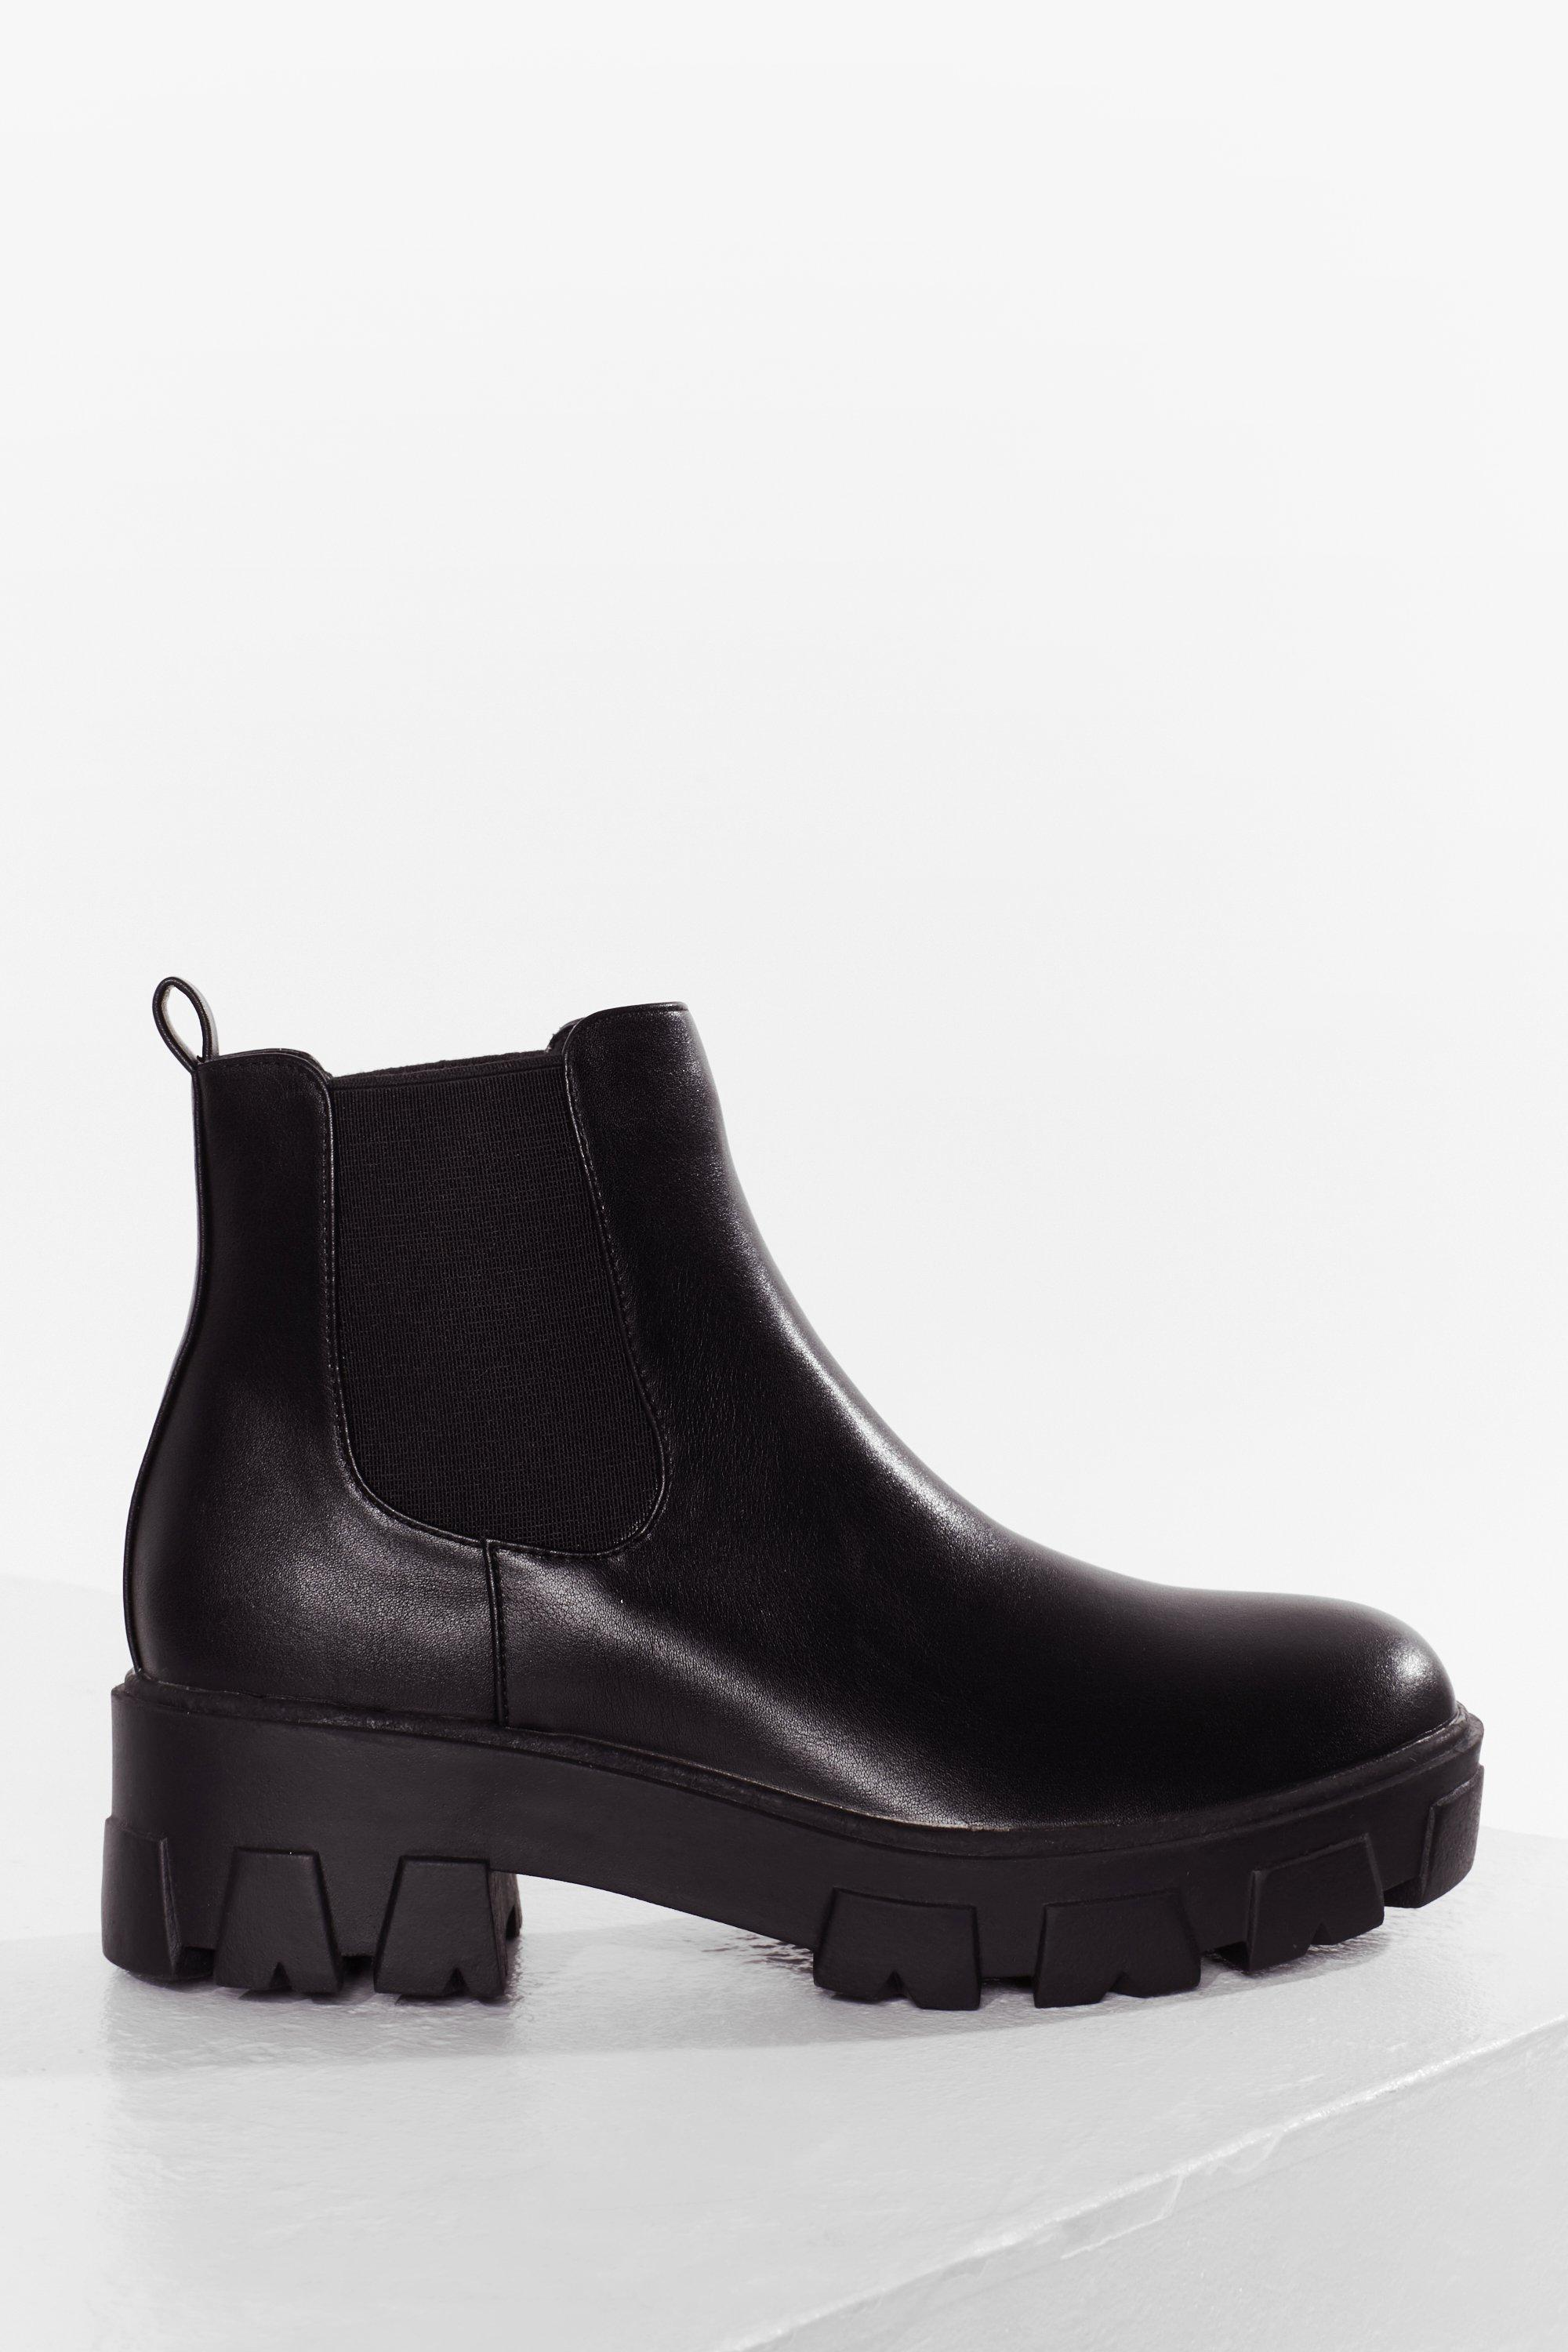 Step Up Your Game Cleated Chelsea Boots